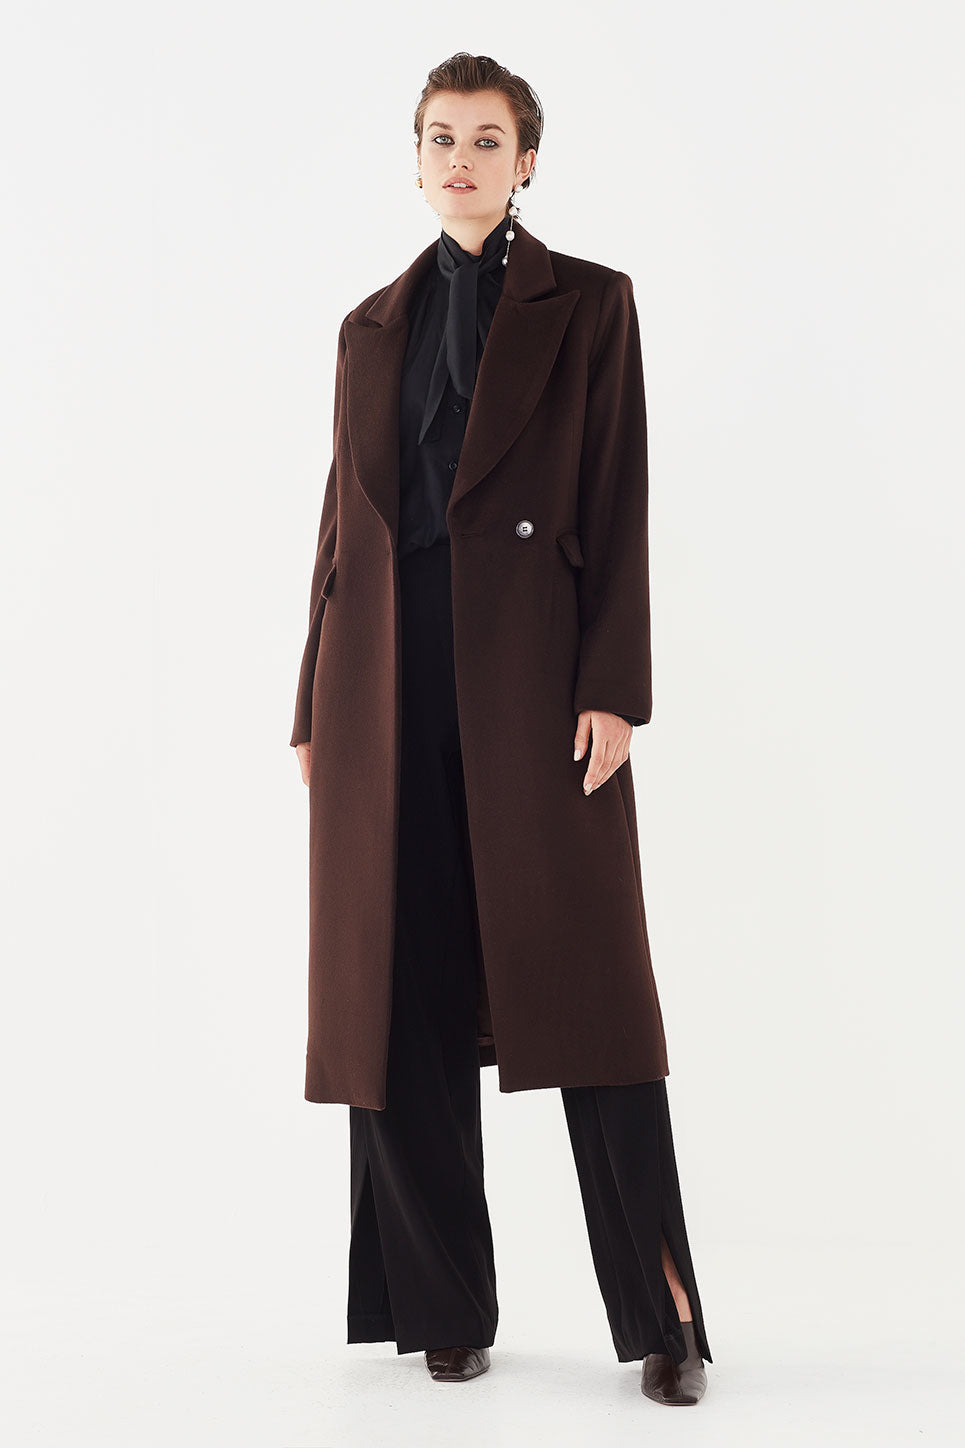 The Carter Coat in Chocolate